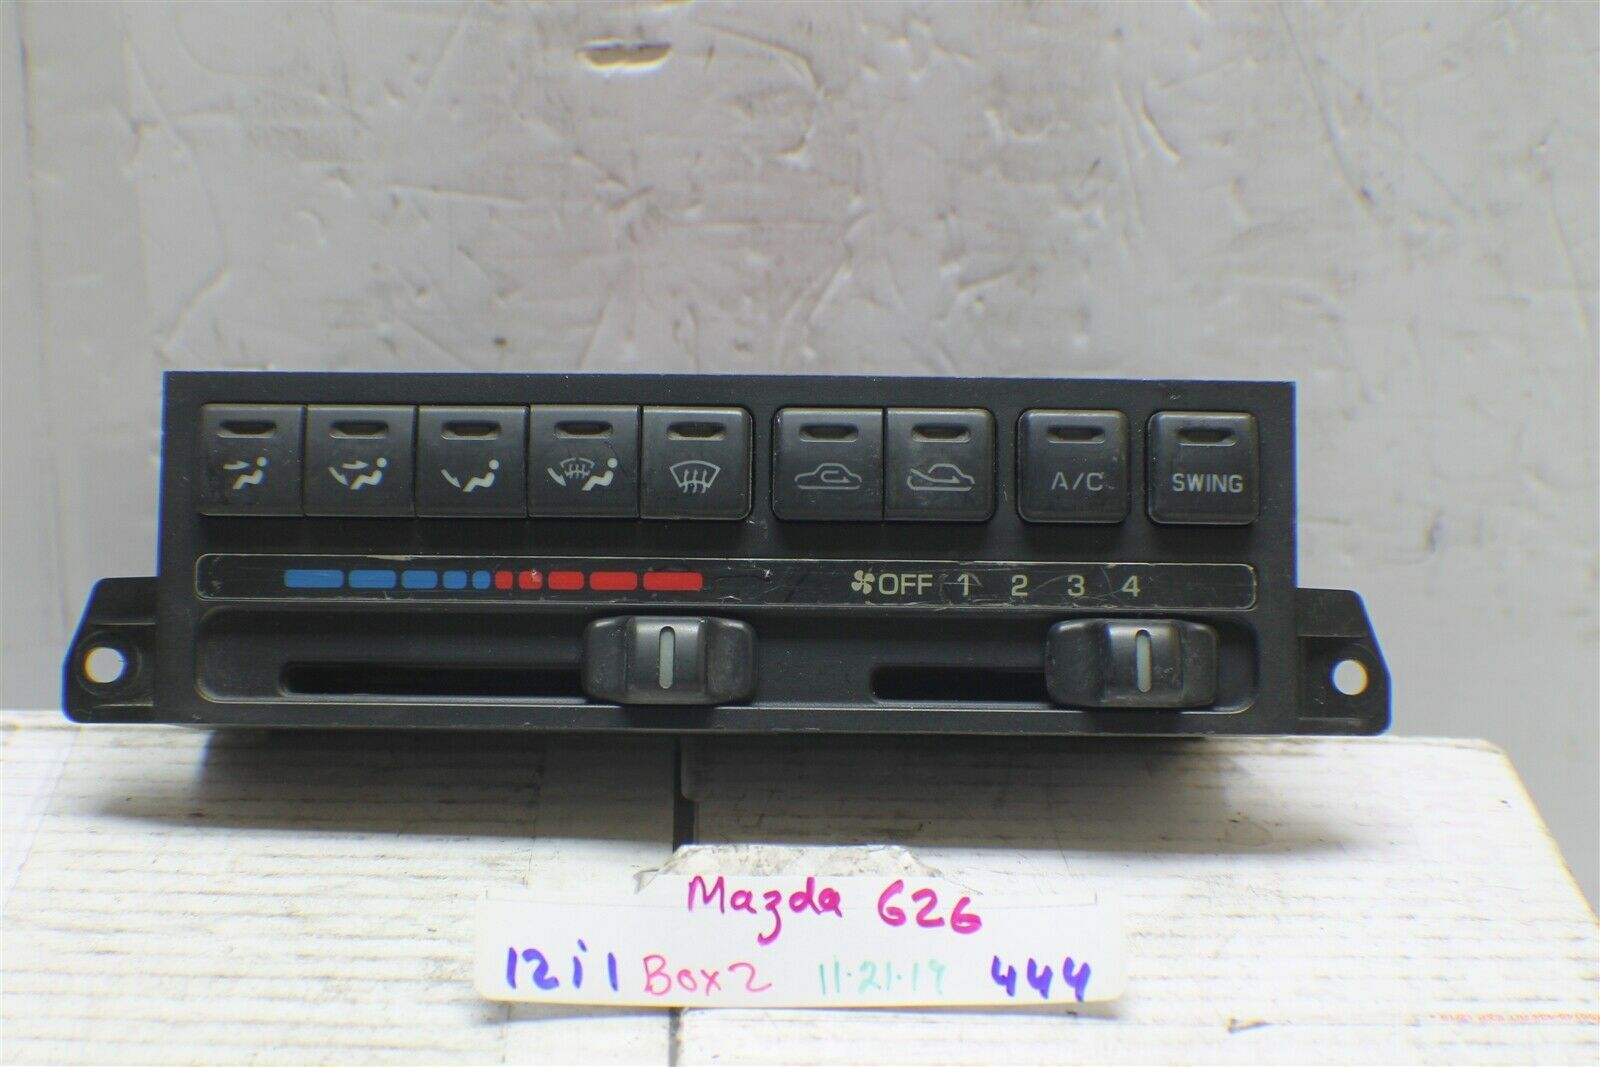 Primary image for 1995-1997 Mazda 626 AC climate control Unit 444 12i1-Bx2